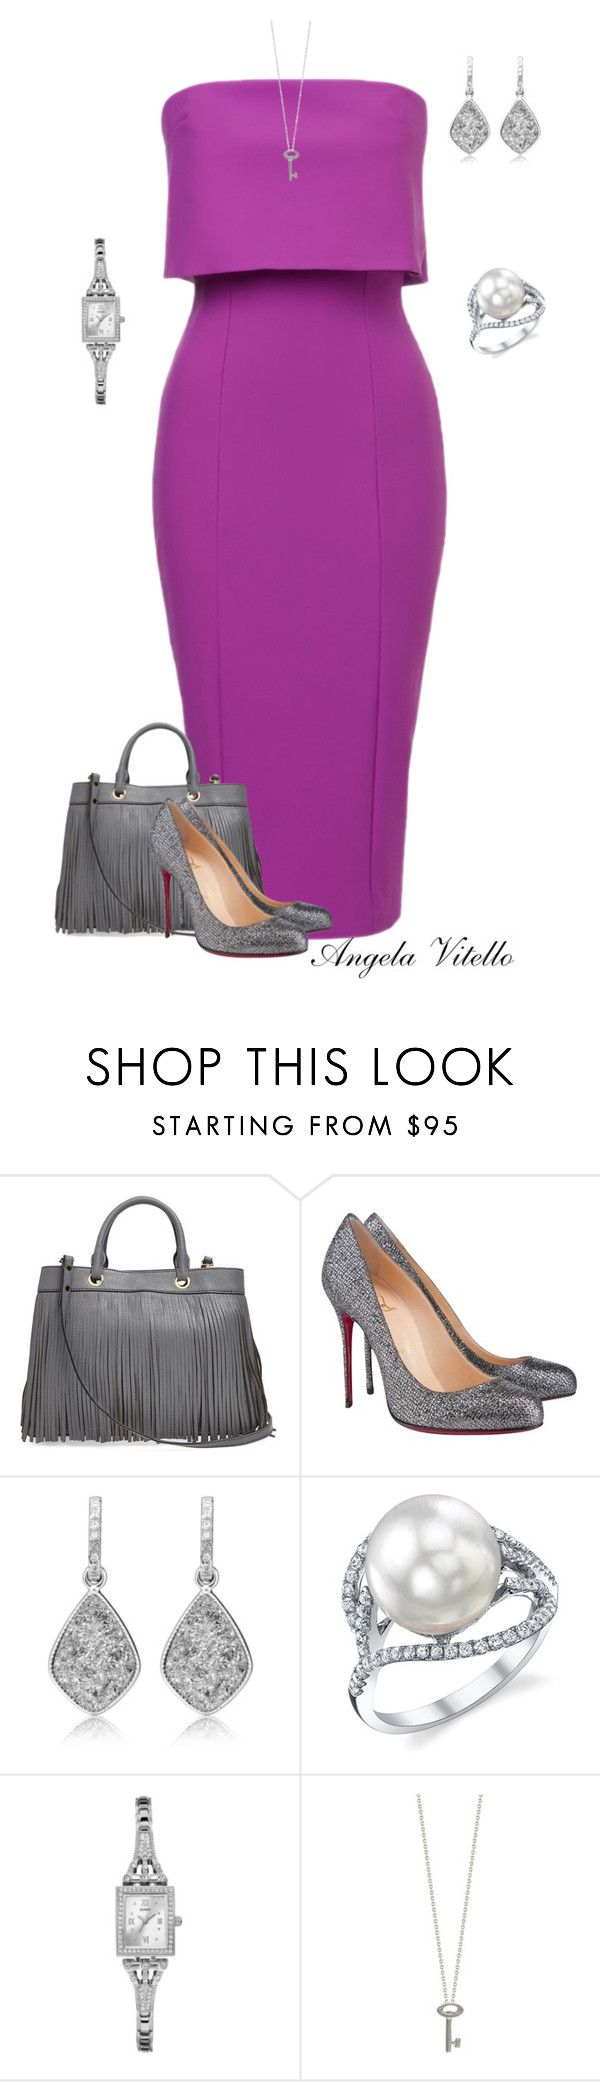 """Untitled #651"" by angela-vitello on Polyvore featuring Milly, Christian Louboutin, GUESS and Roberto Coin"